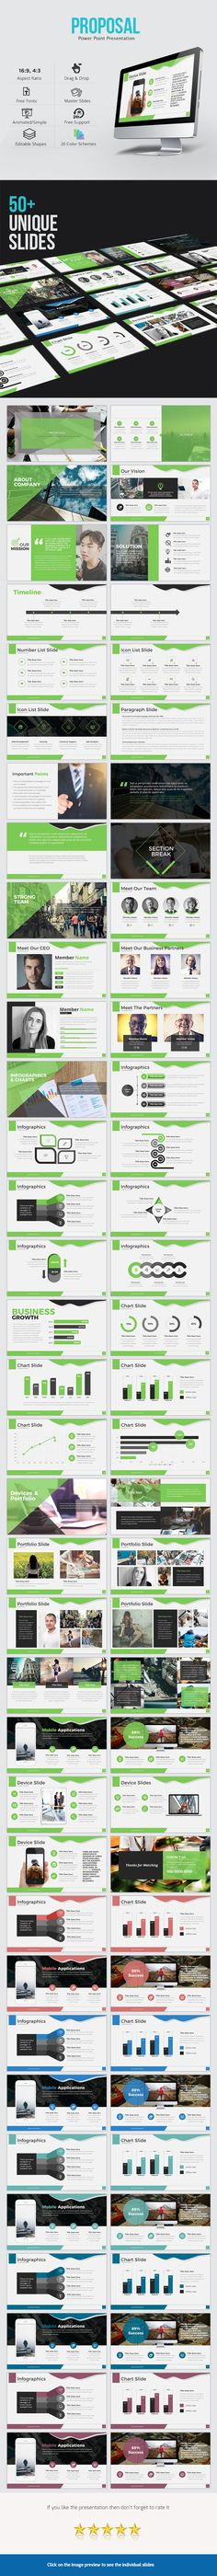 Proposal Power Point Presentation - Business PowerPoint Templates